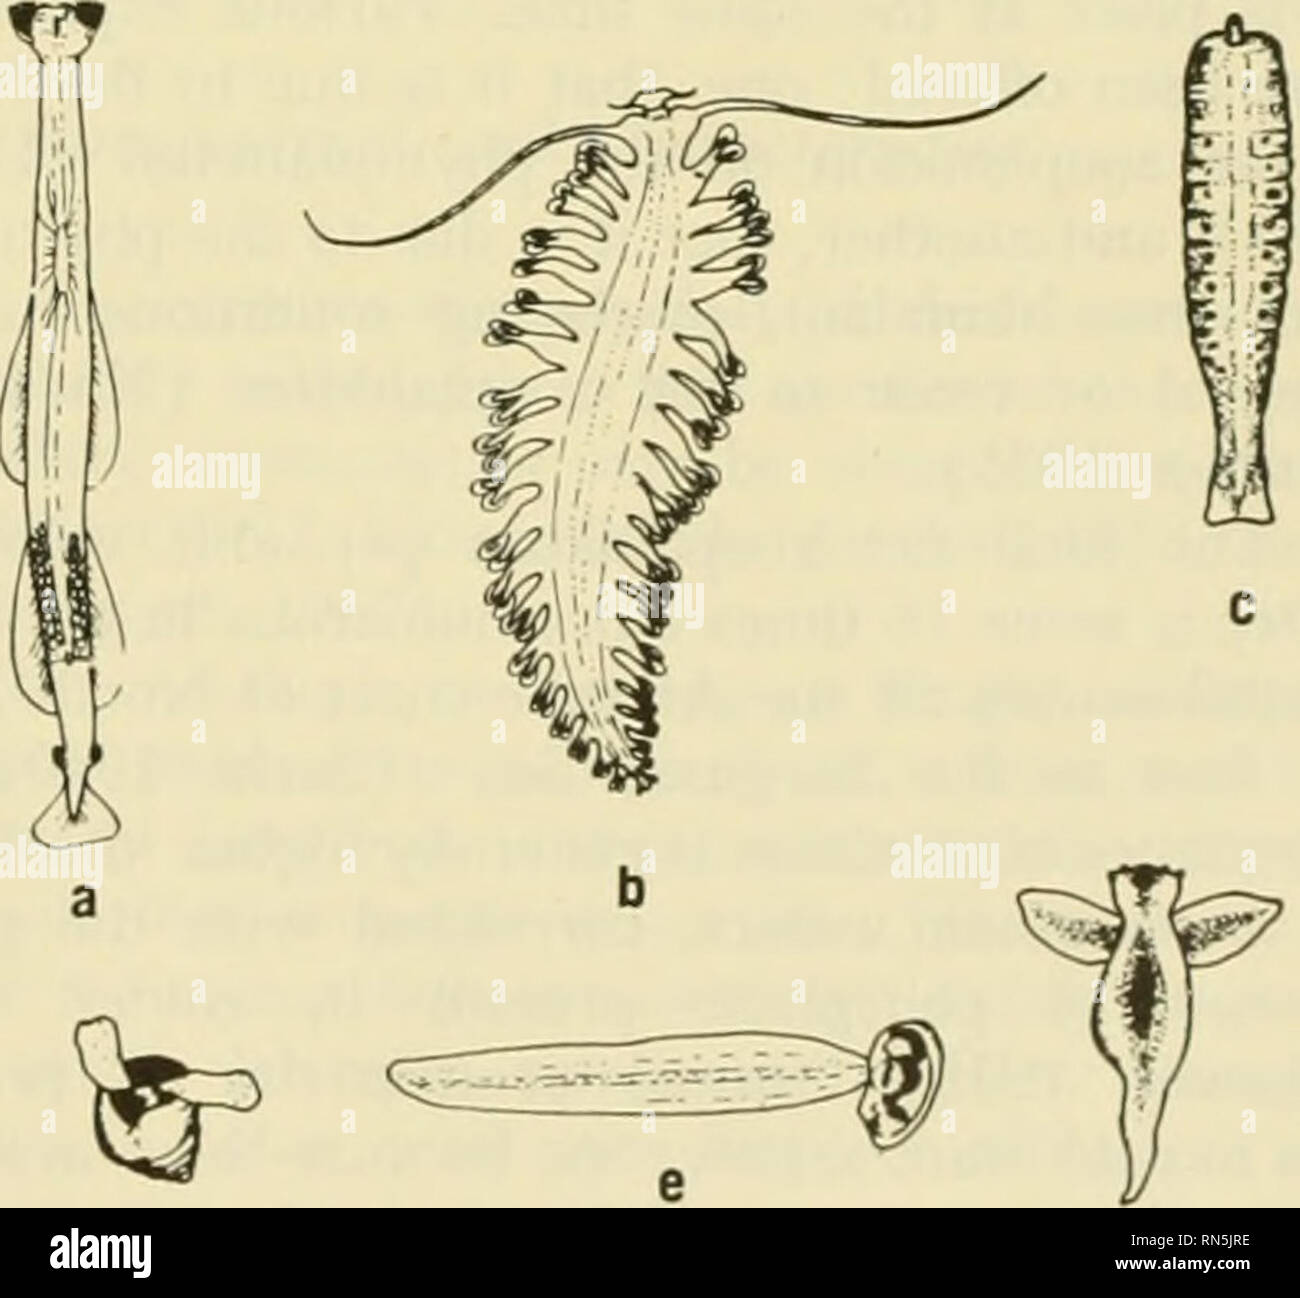 . Animal Ecology. Animal ecology. FIG. 28-3 |C| Cruitaceous/o, b) osfracod ConcAoecia. c| copepod Calanus, d) amphipod, Phronemia, in empty mantle of the pelagic tunicate Salpa. atopods. Many of these forms arc also bcntliic or nektonic during a part of the life cycle. Among the chordates are the remarkable and sometimes abundant tunicates. The eggs and imma- ture stages of many fish are pelagic in that they absorb just enough water shortly after being spaw^ned to have almost precisely the same density as the sur- rounding water. The eggs of skates and rays, some of the sharks, and some other  Stock Photo